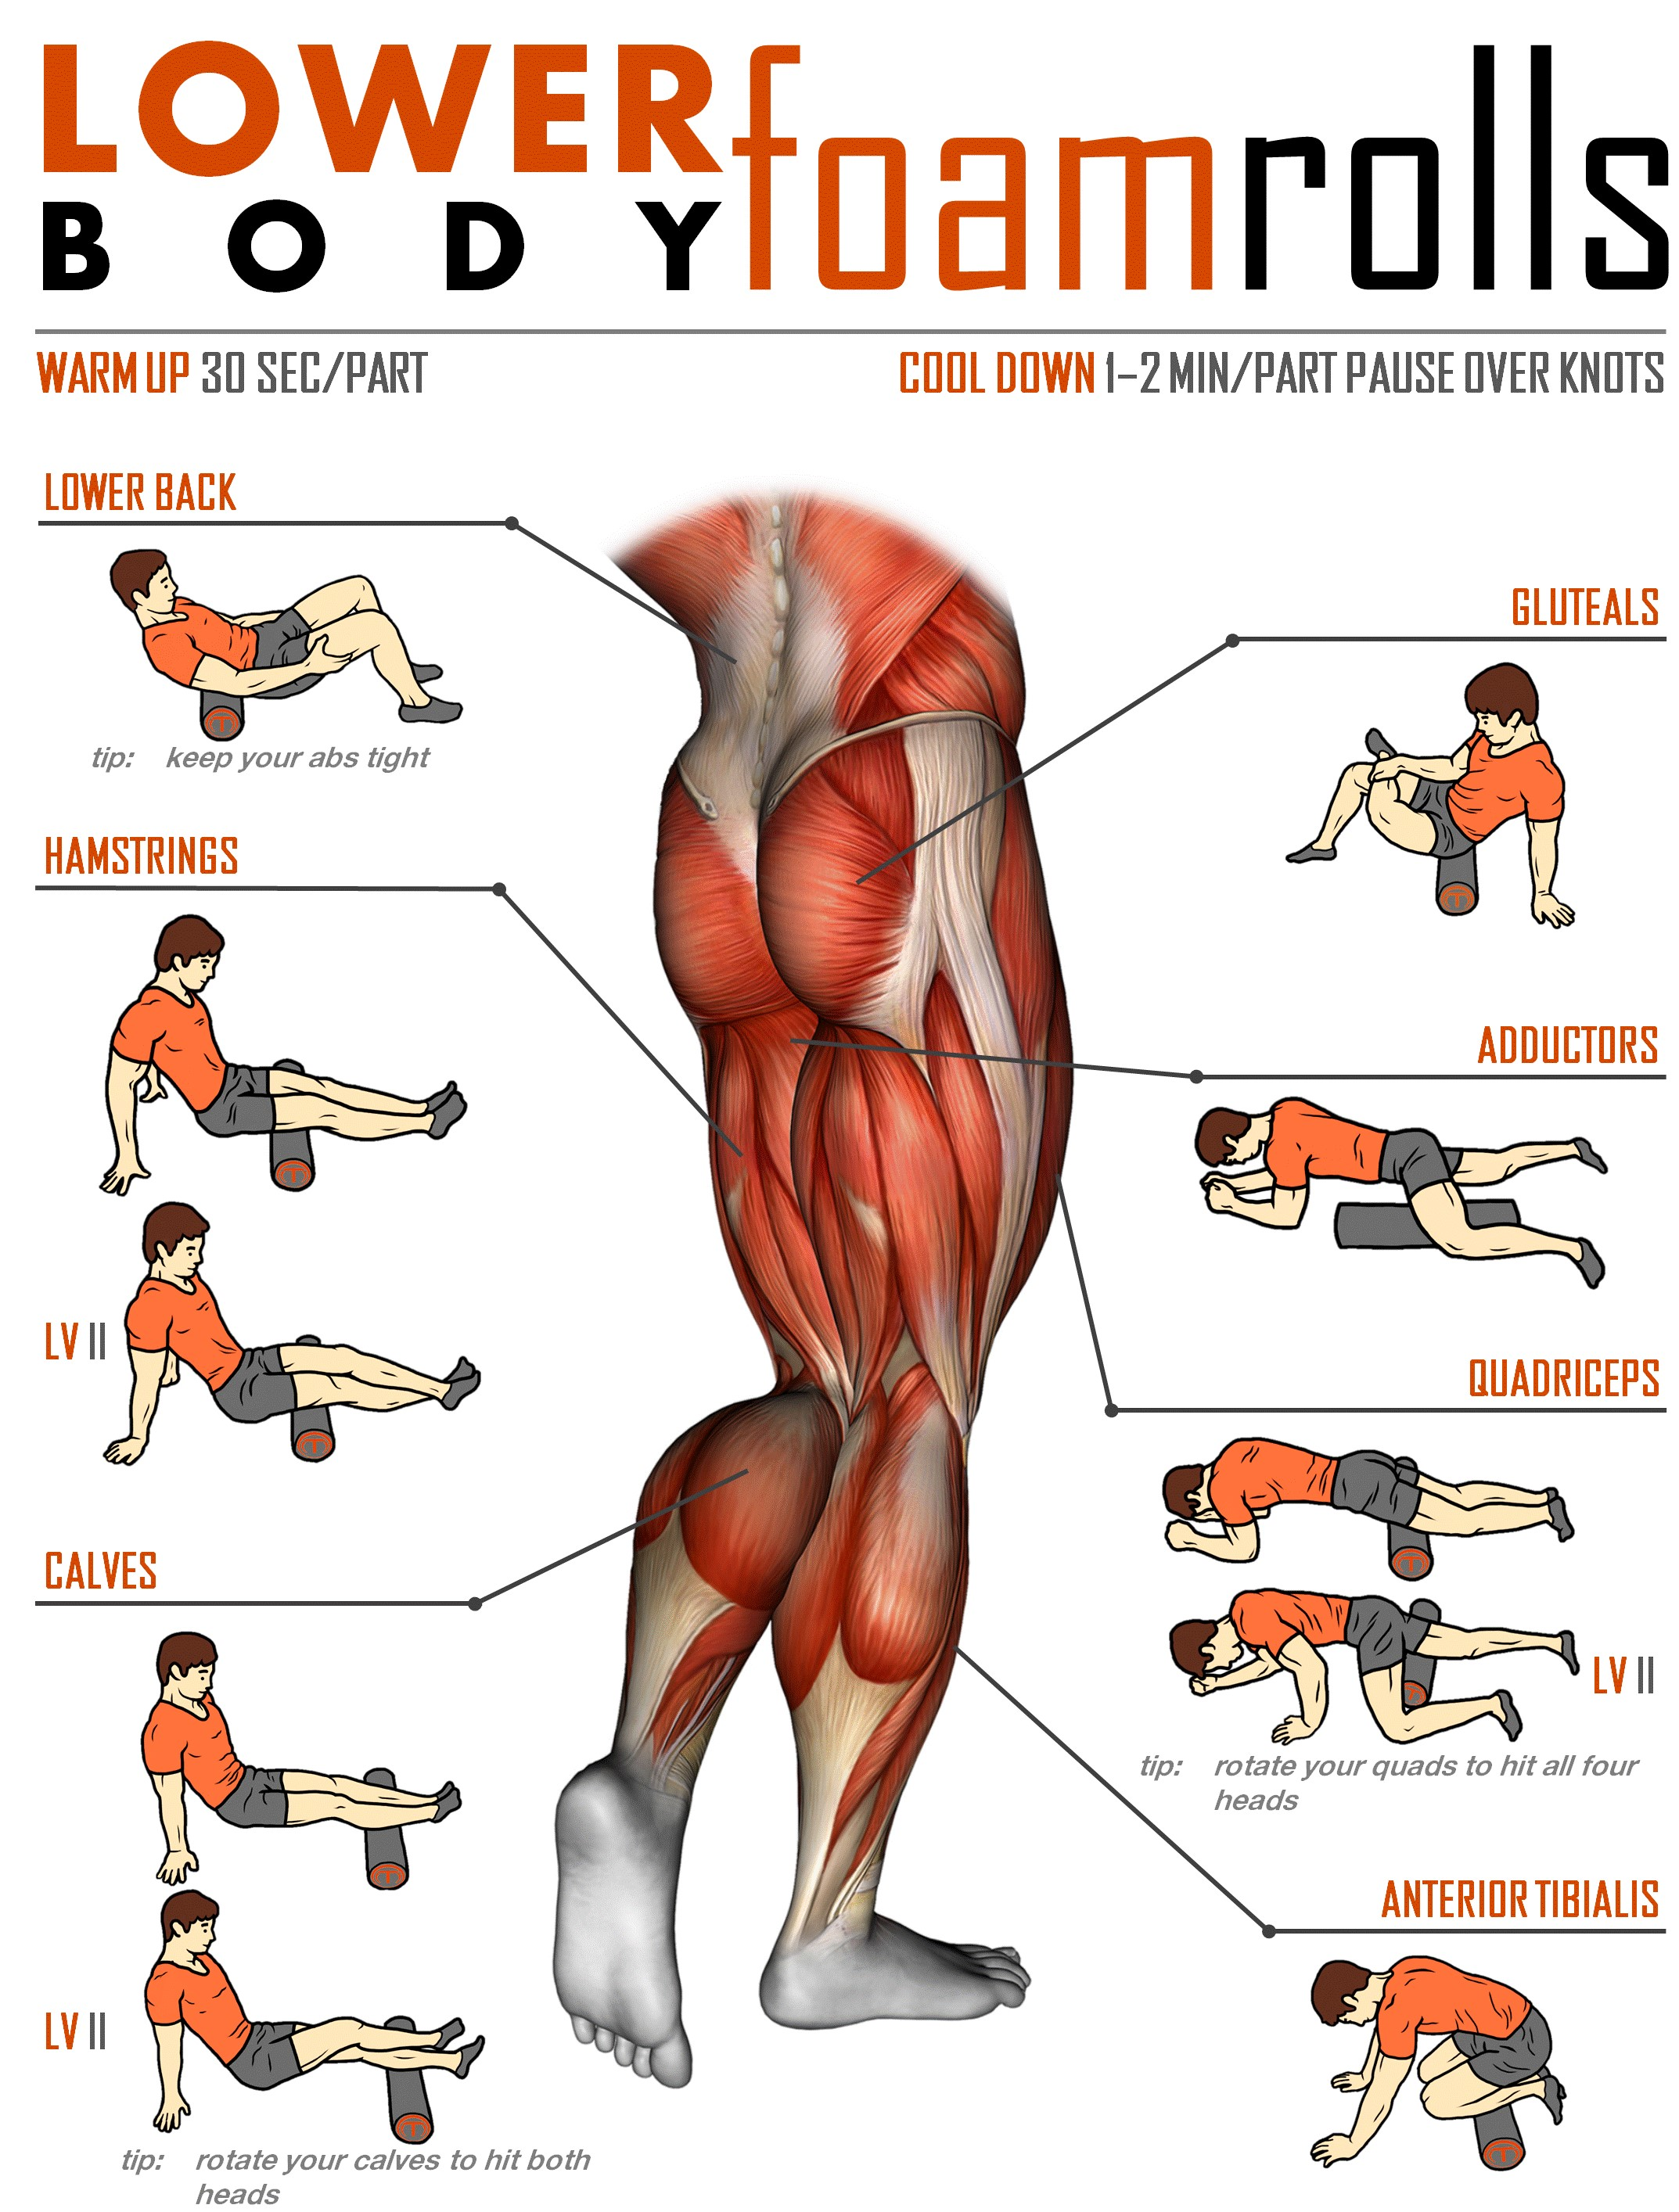 foam_roller_exercises_lower_body (1)